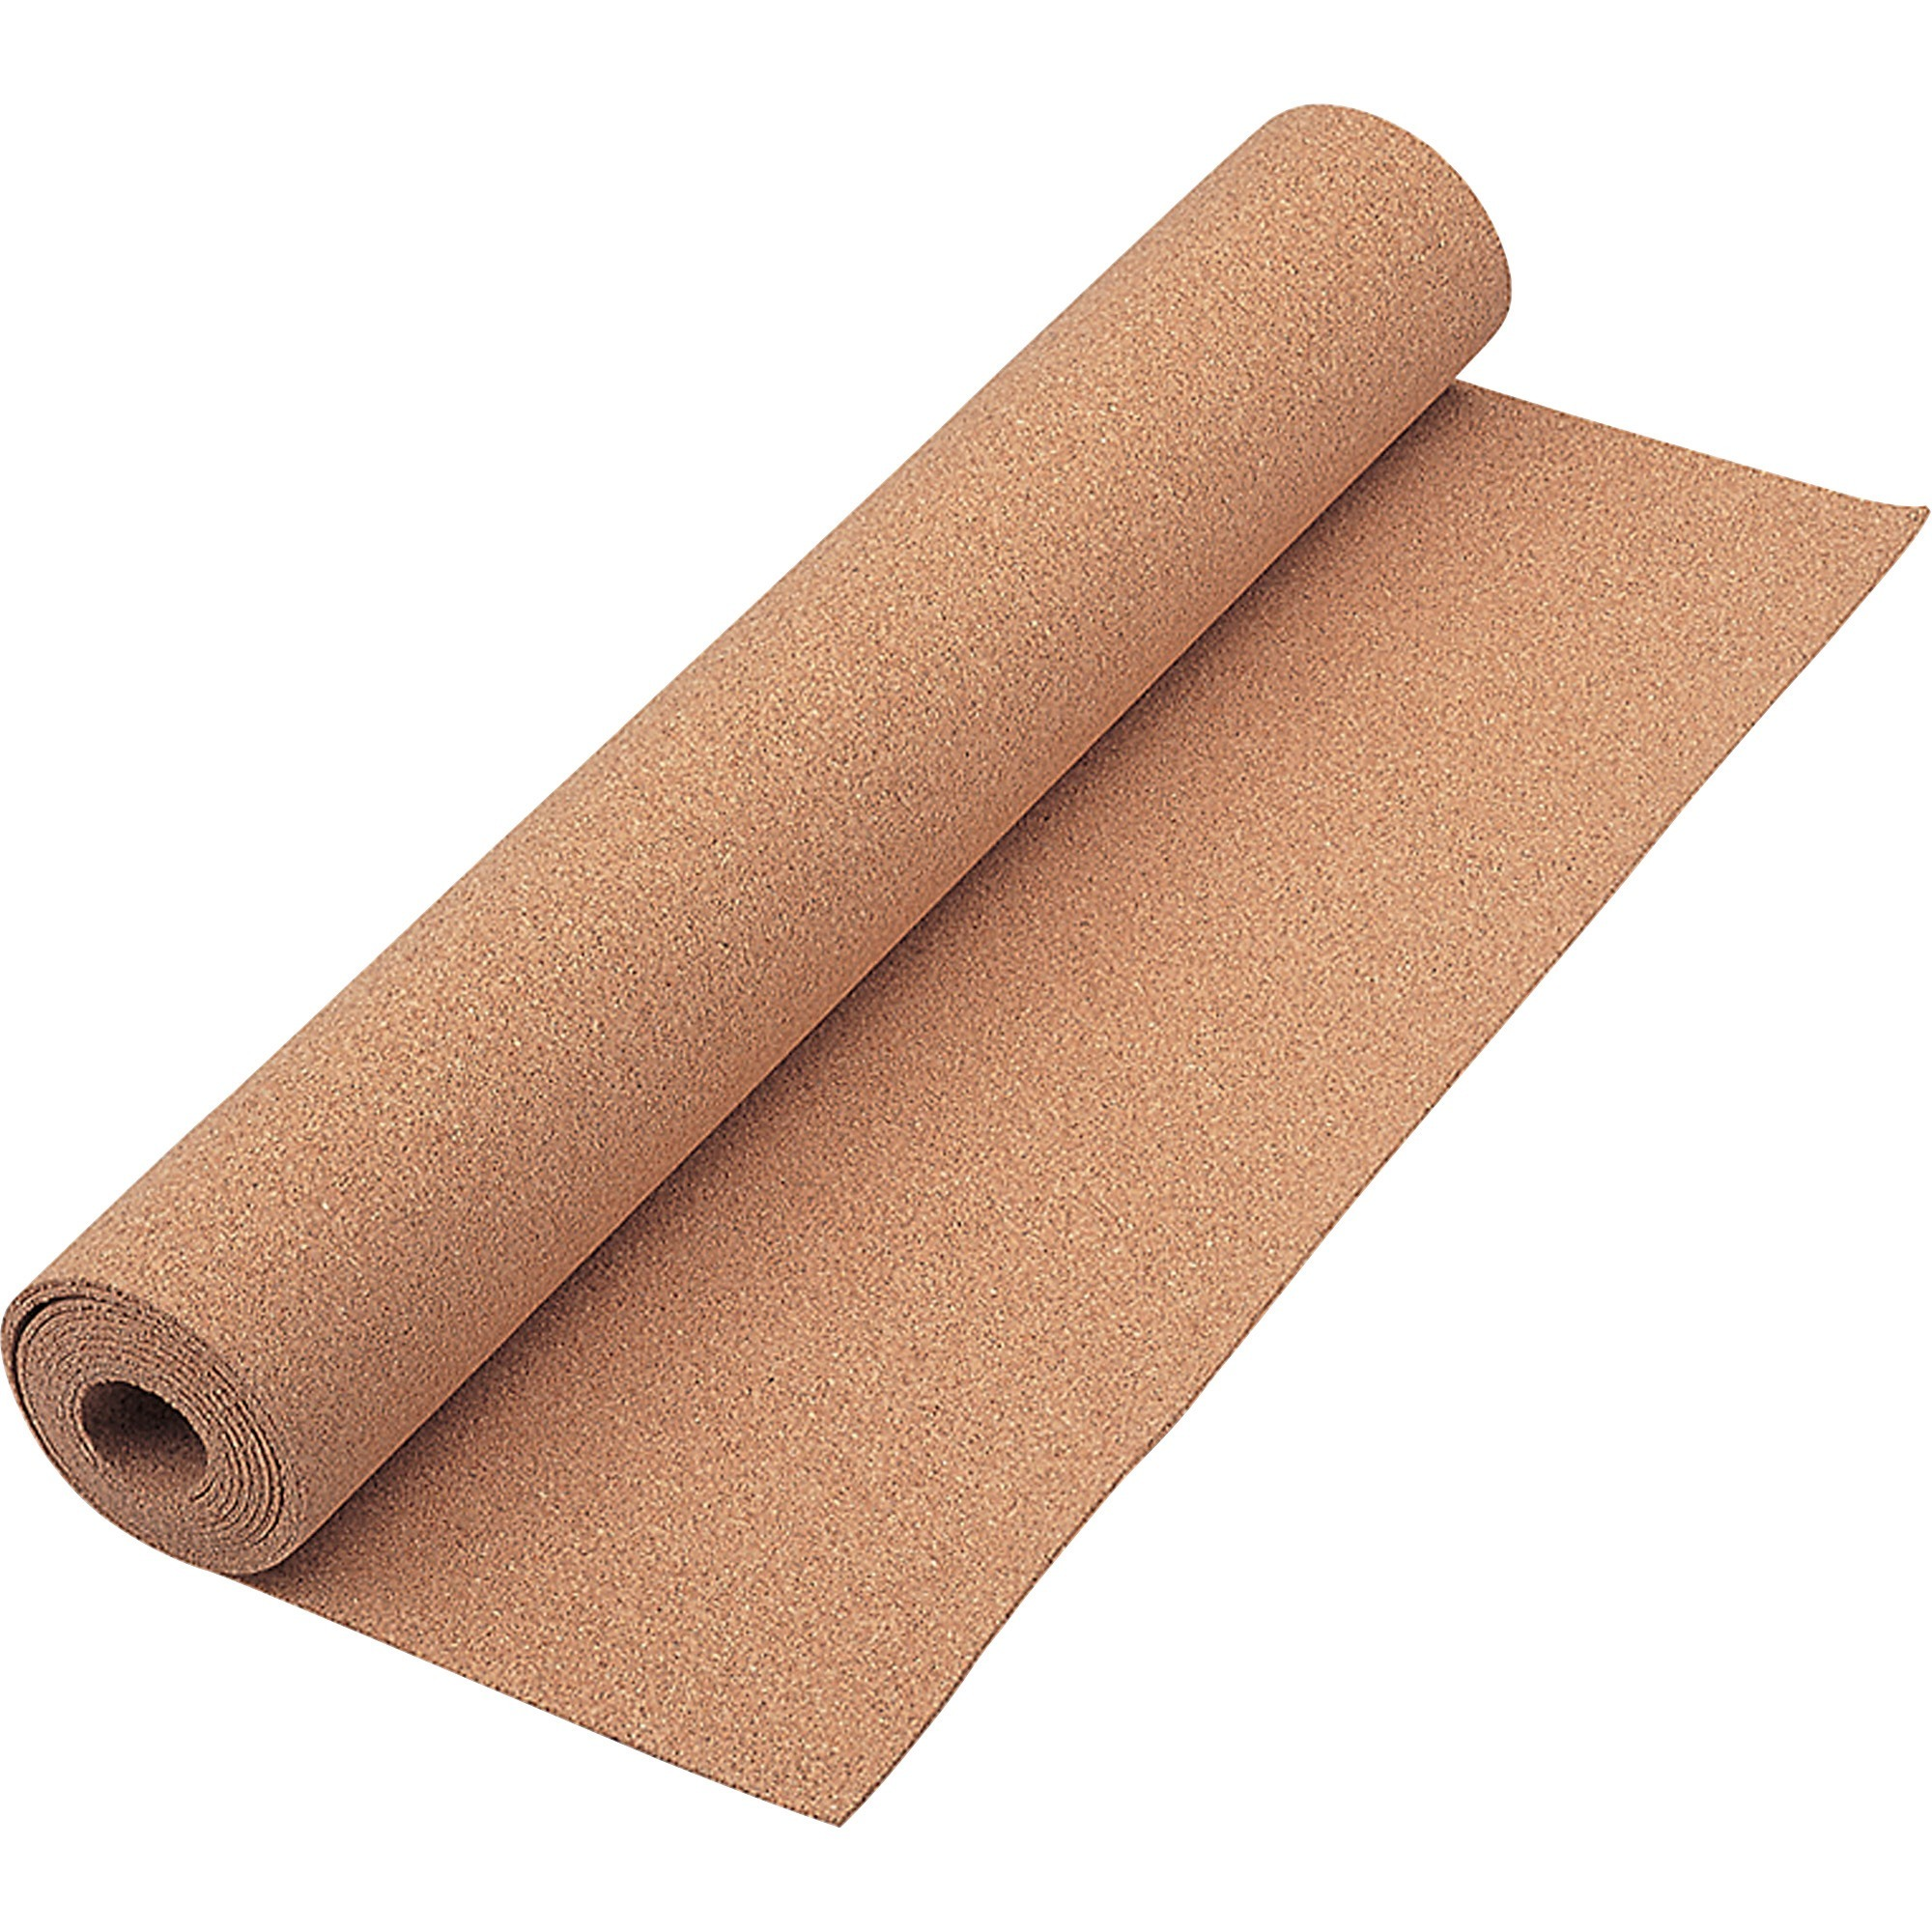 Acco Brands Corporation Quartet® Natural Cork Roll, 24 X 48 - 28 Height X 24 Width - Brown Natural Cork Surface - 1 Each